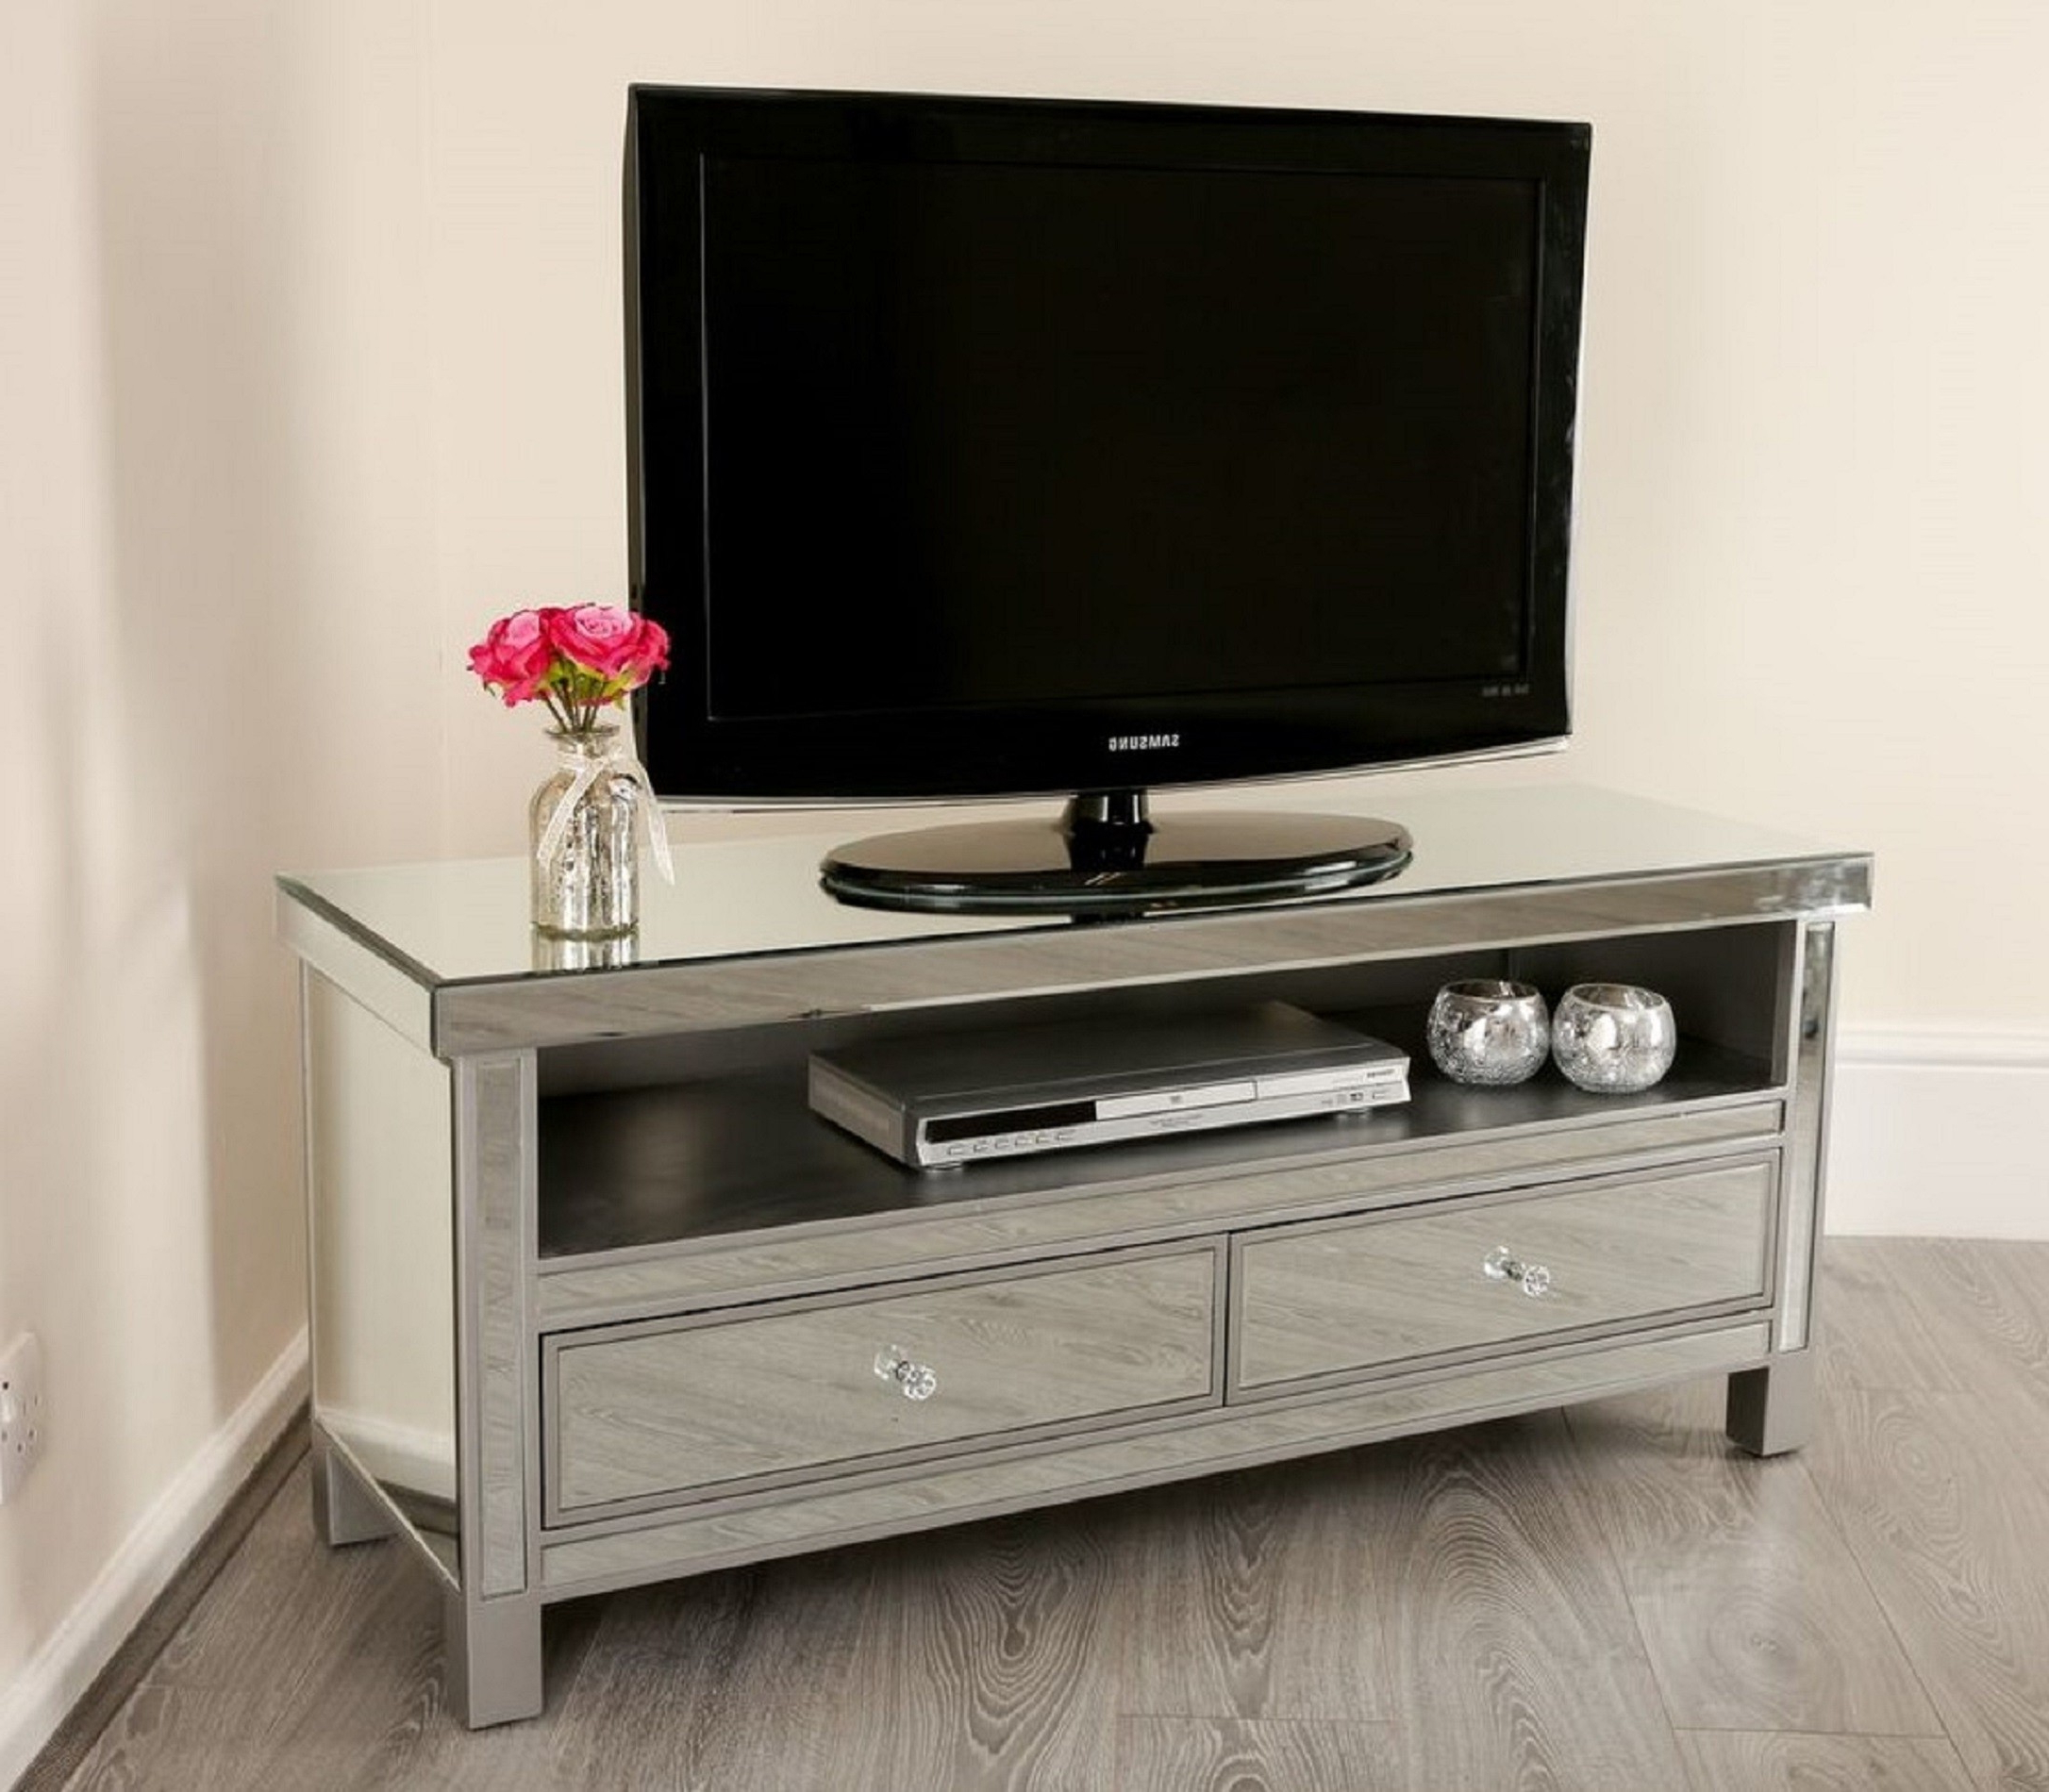 Mirrored Tv Stands Inside 2017 Venetian Mirrored Tv Stand With Storage – Venetian Mirrored (View 15 of 20)